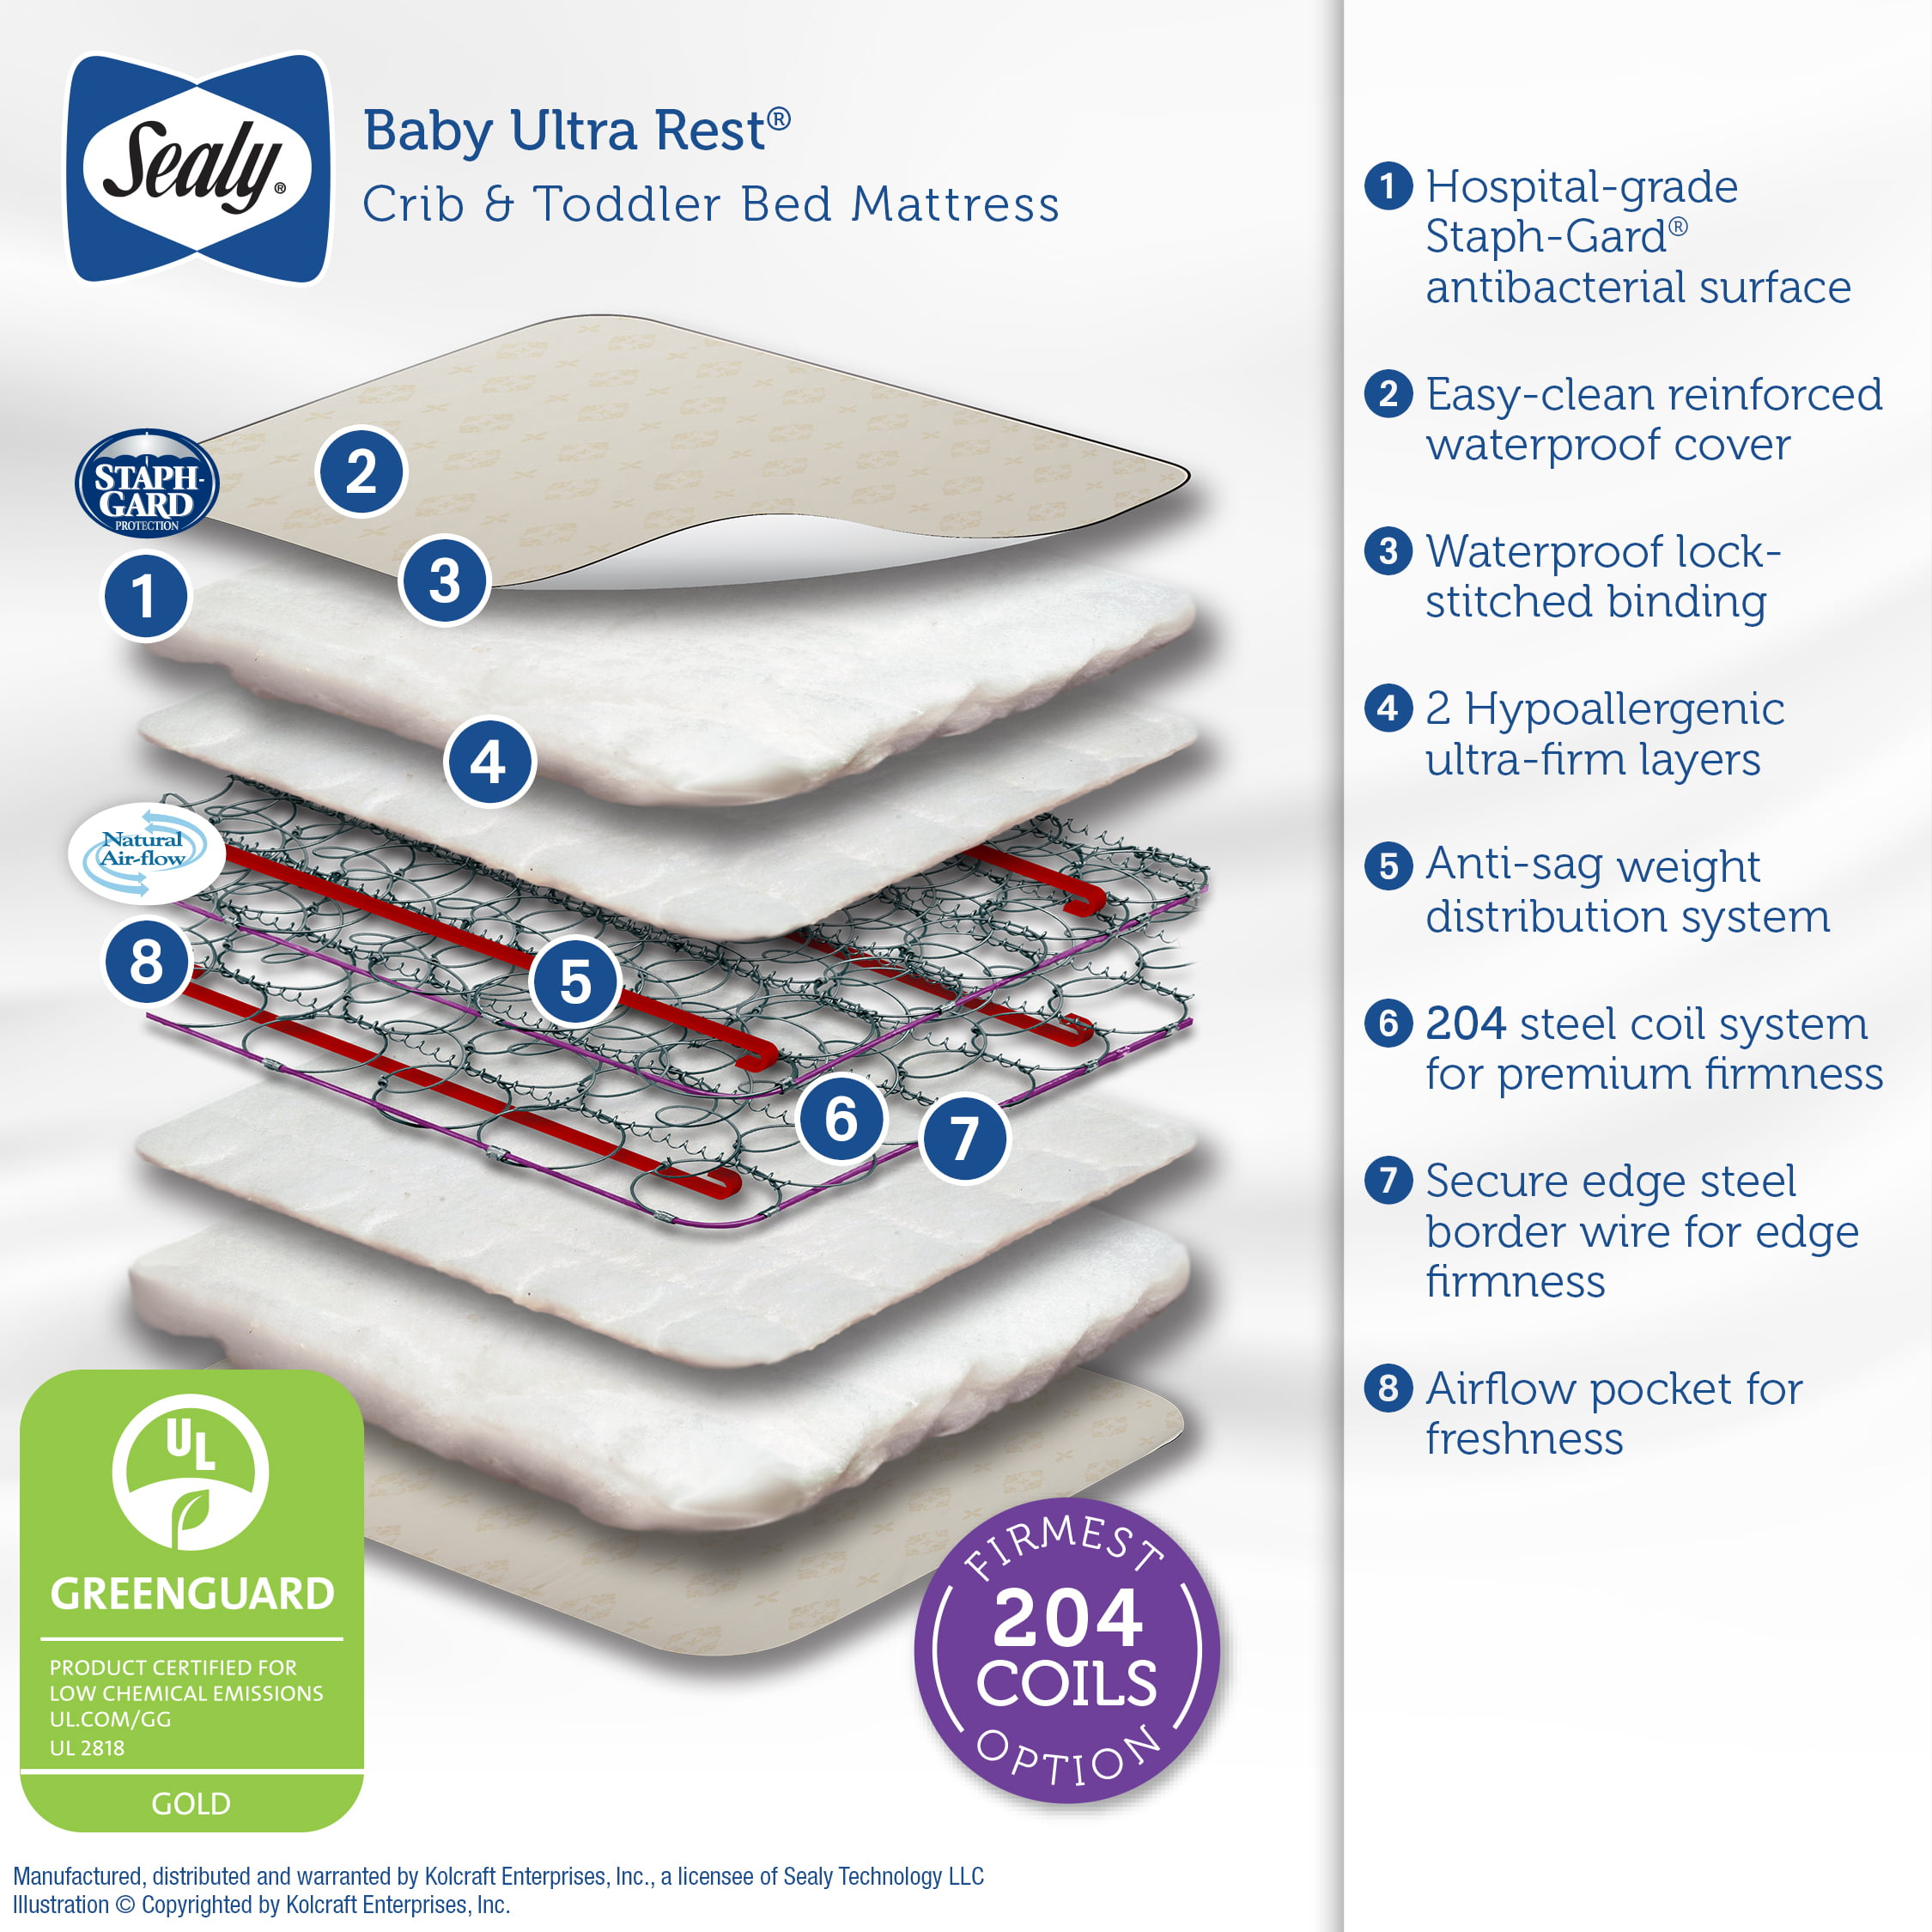 sealy baby ultra rest crib and toddler mattress innerspring